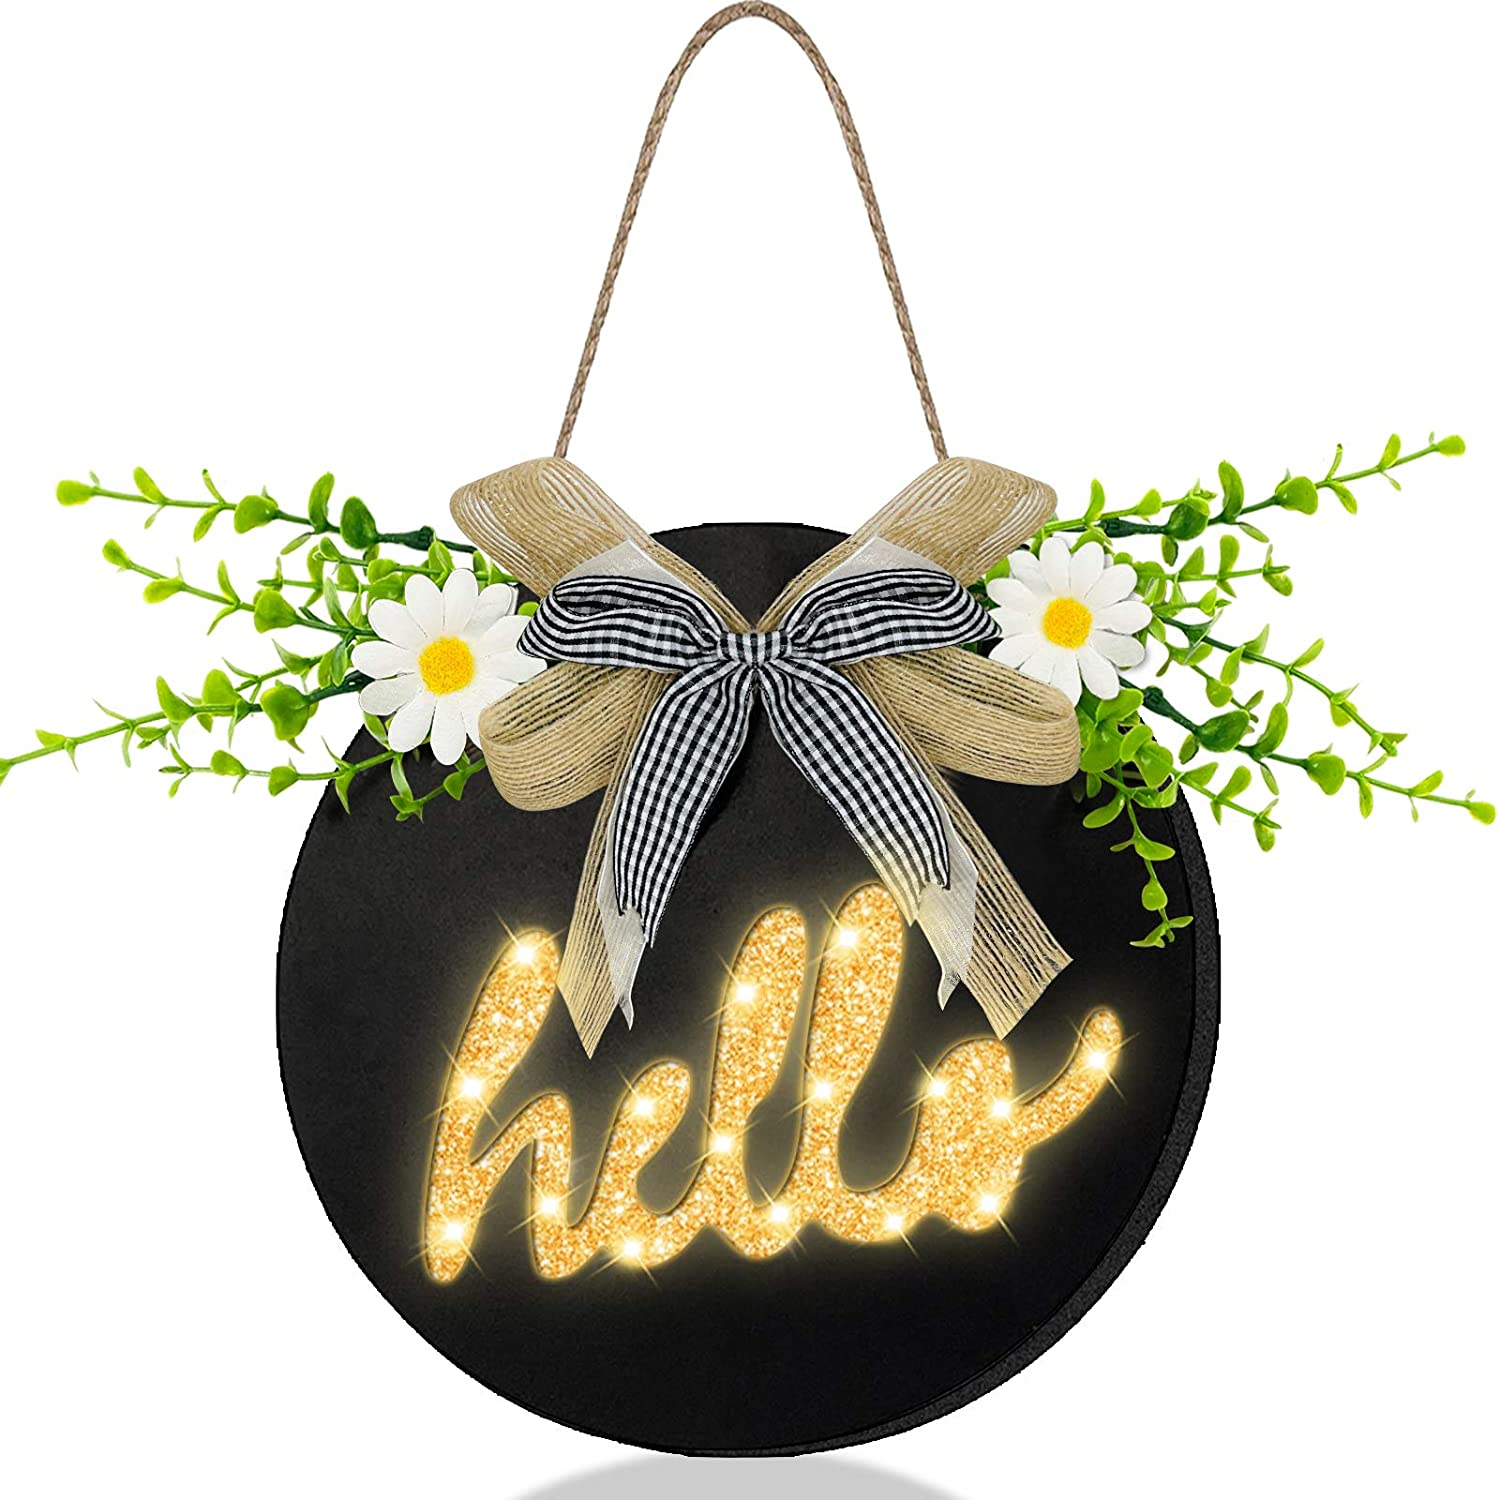 TURNMEON Prelit Hello Welcome Wreath Sign with Timer for Front Door Porch Decor Hanging Round Wooden Sign Spring Summer Wreath Farmhouse Outdoor Home Wall Decoration Housewarming Gift